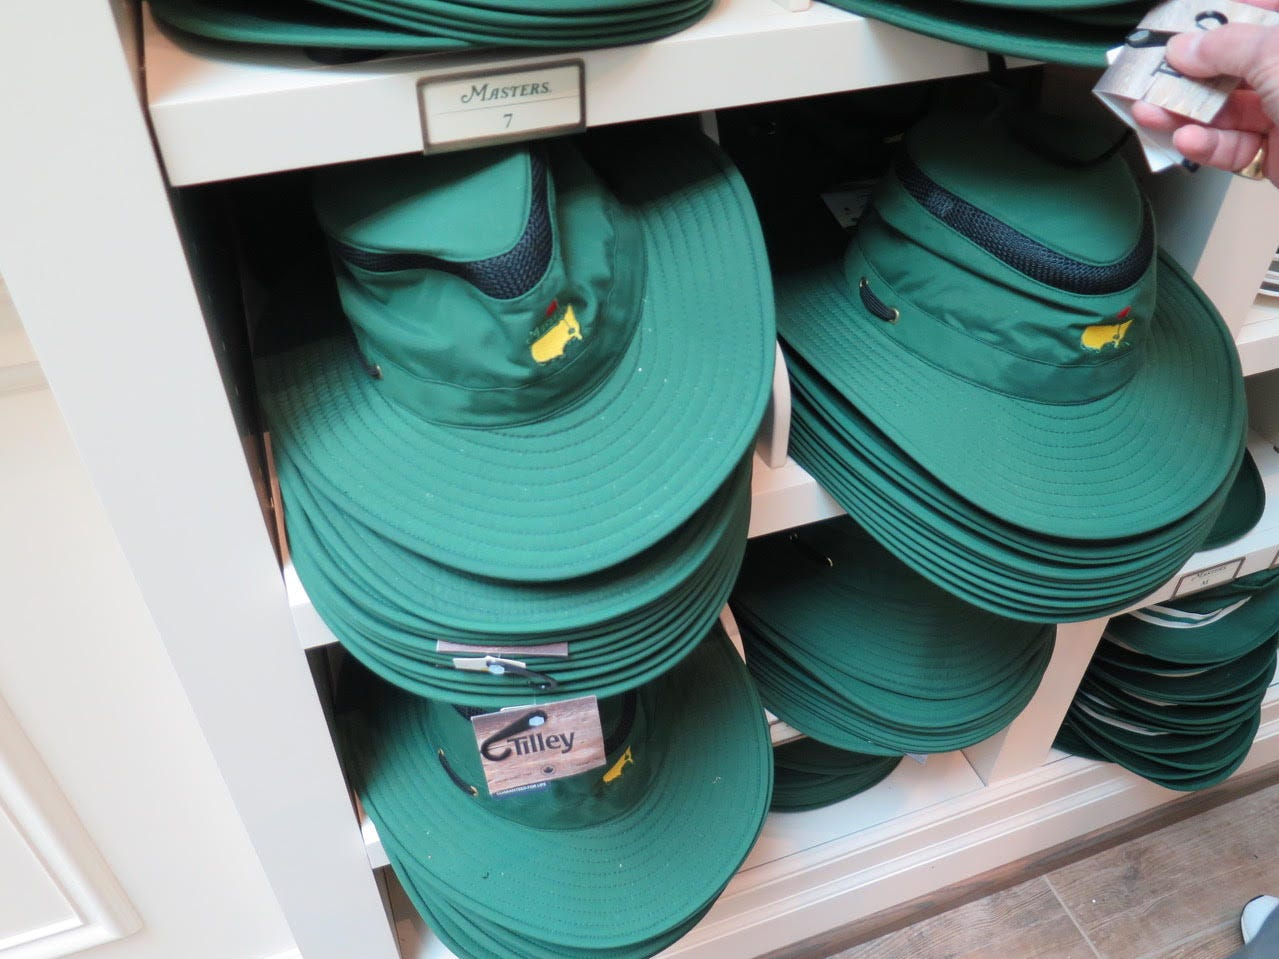 Tilly sun hat: $95 – For the teaching pro in your life, the classic sun hats return with a new Tilley brand offering in green. They have a lifetime guarantee and that breathability, not to mention a perfect Masters green.